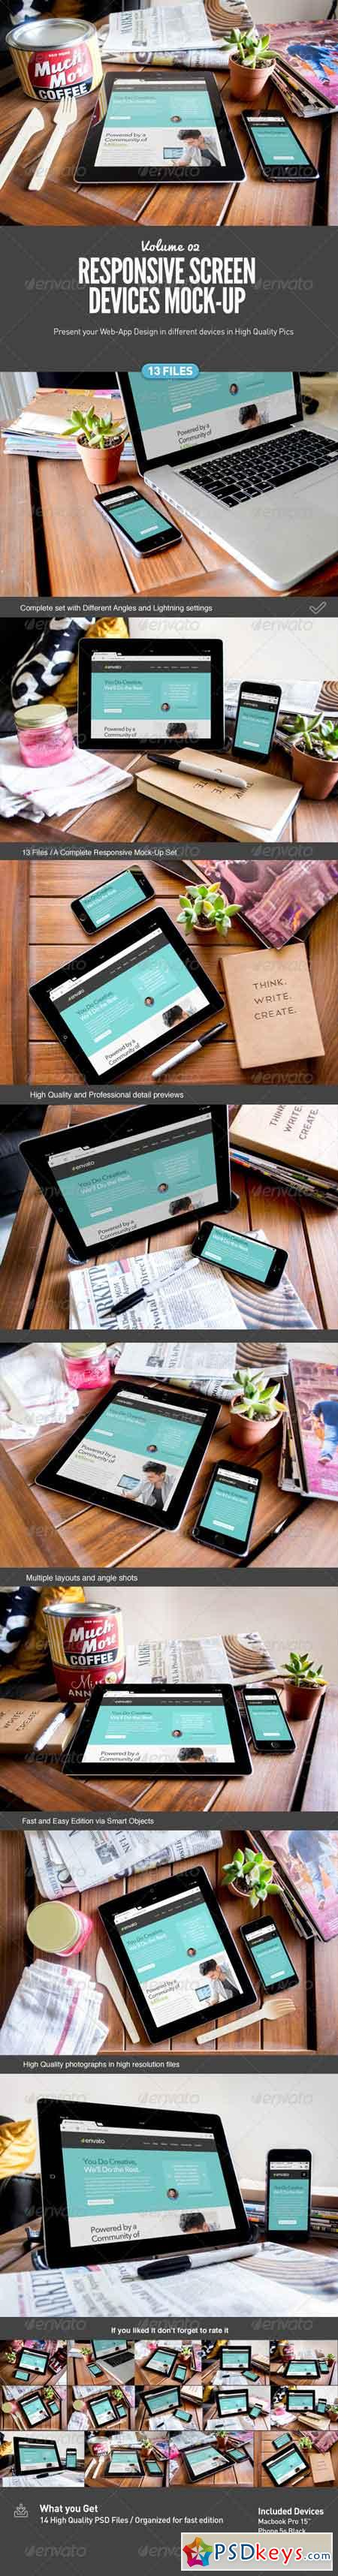 Responsive Screens Device Mock-Up 7869497